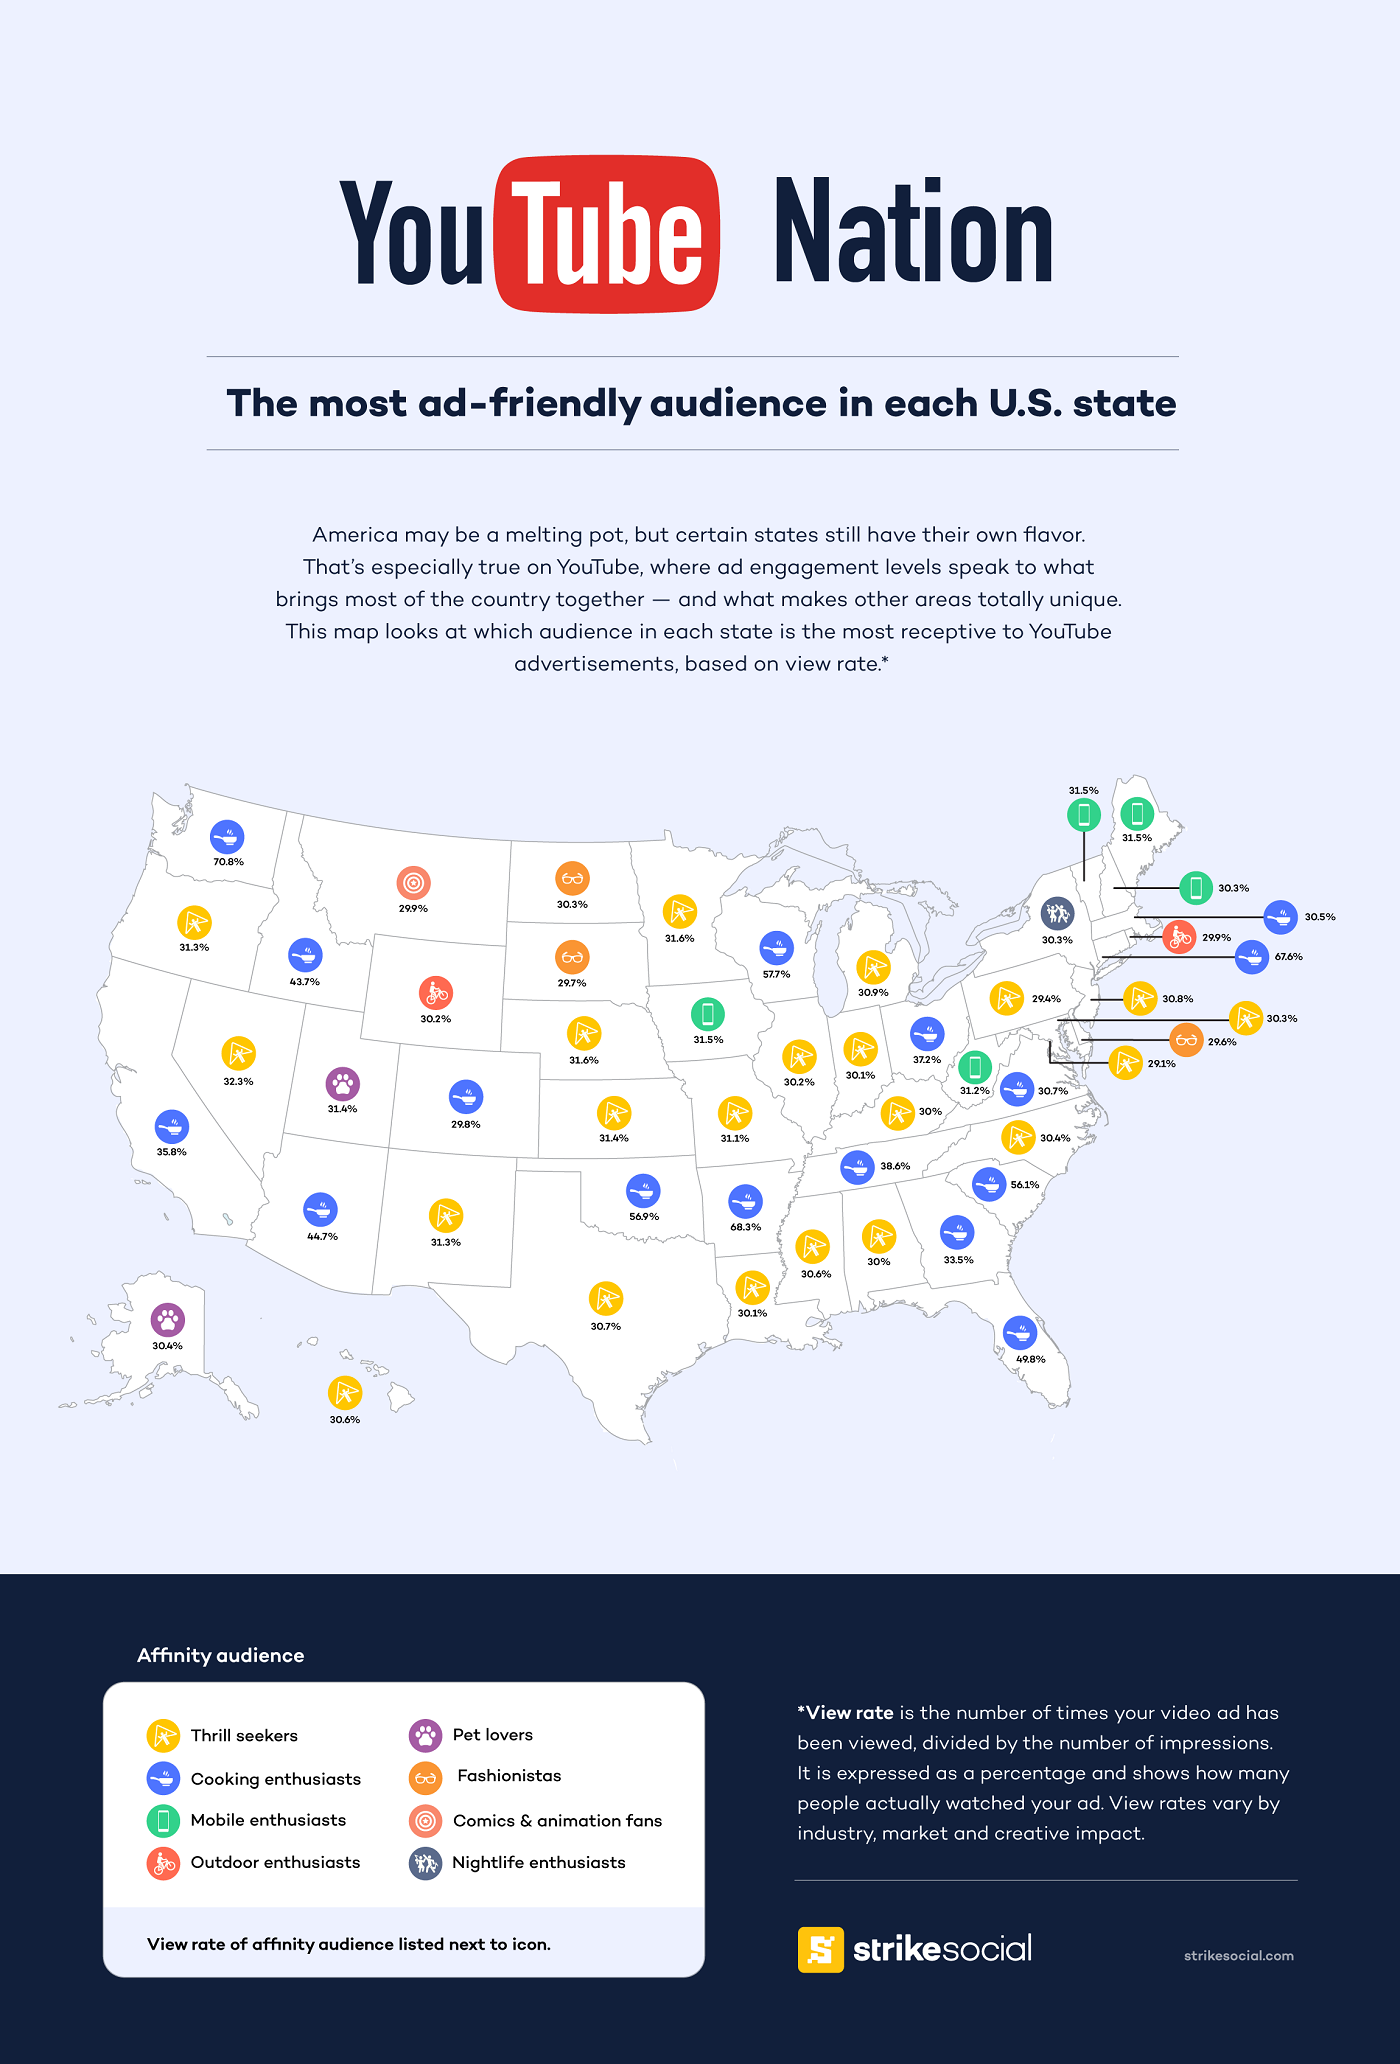 YouTube Nation: The Most Ad-Friendly Audience in Each U.S. State